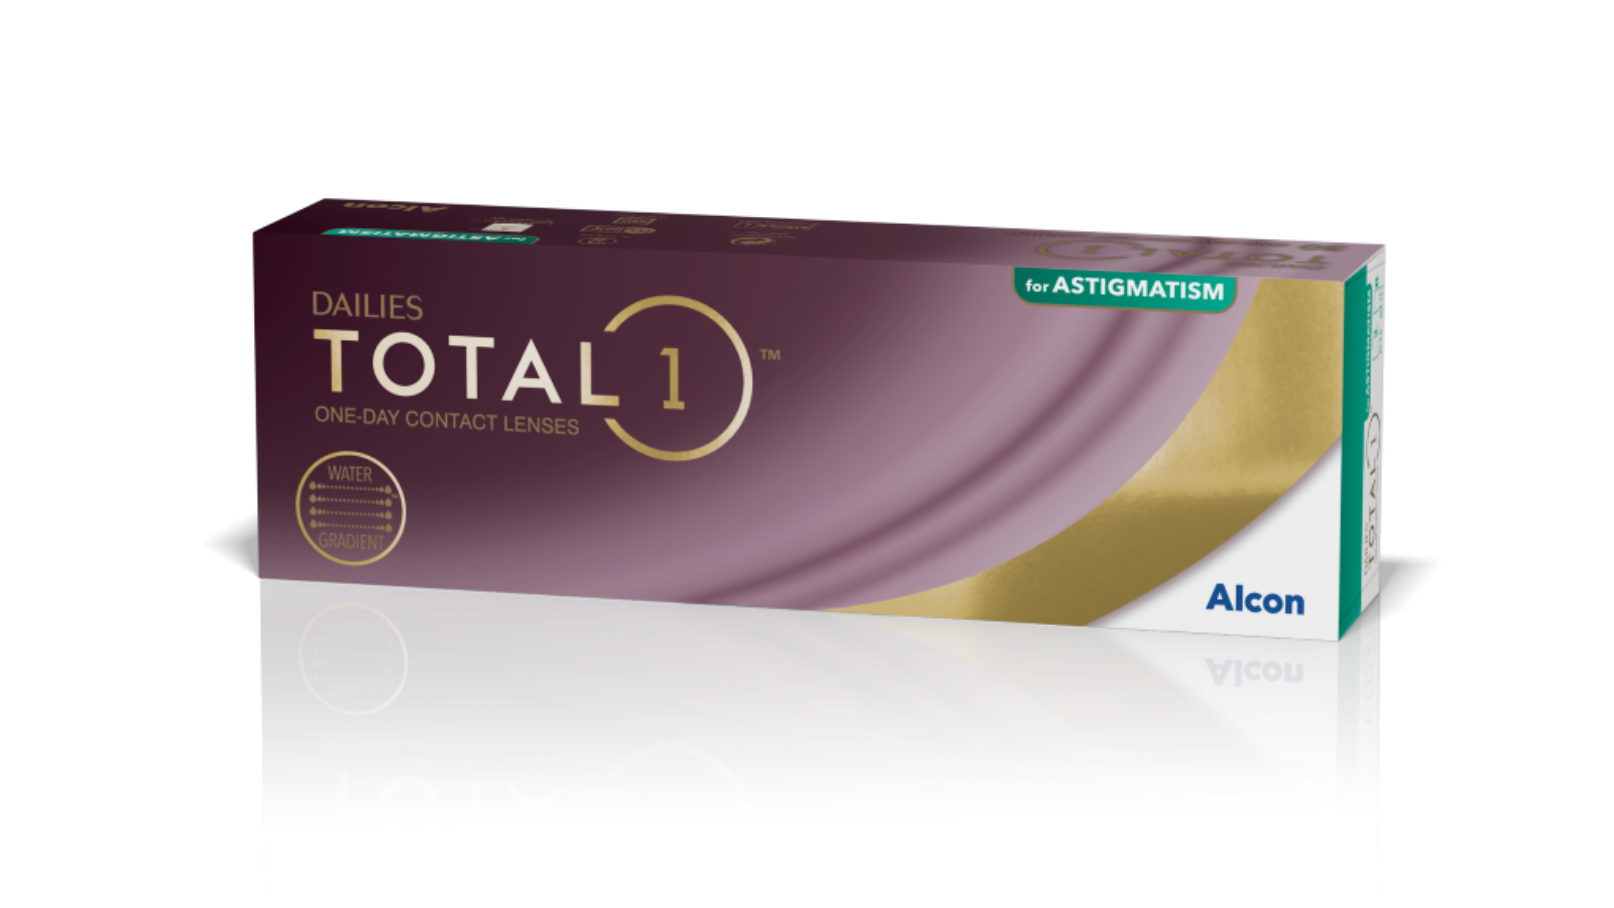 DAILIES TOTAL1® for Astigmatism